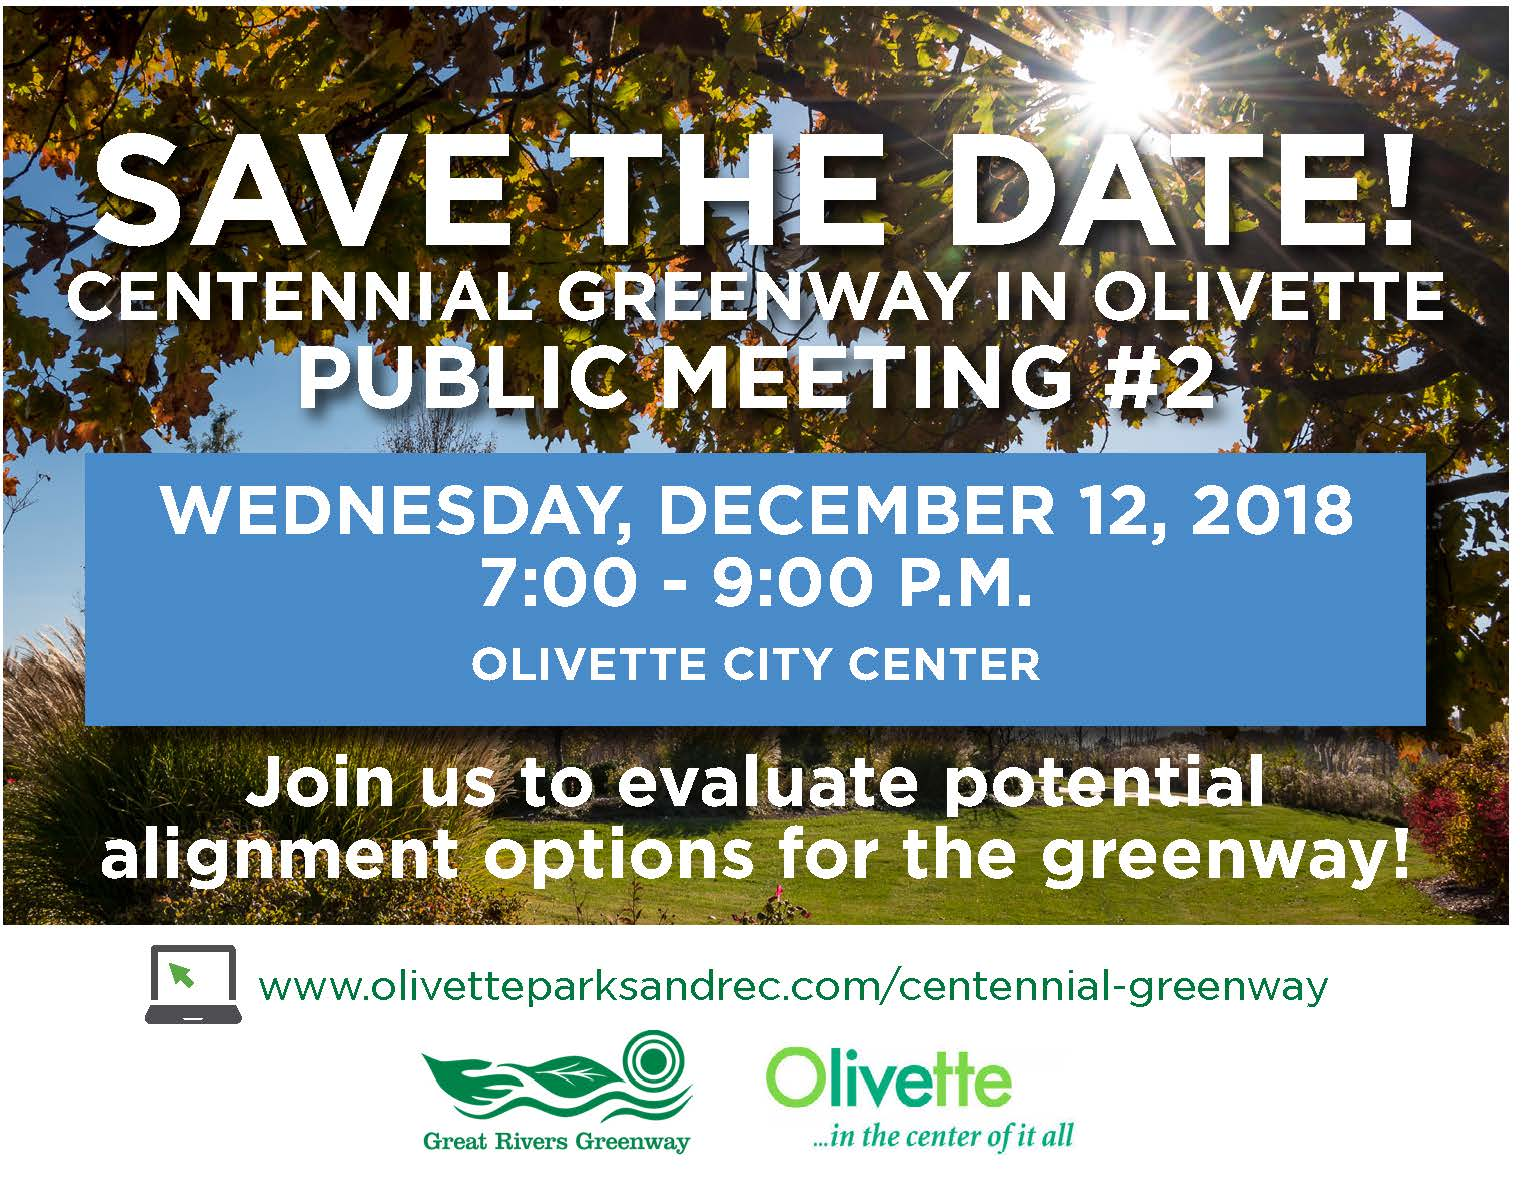 GRG_Centennial Greenway Save the Date 2018 1107V2